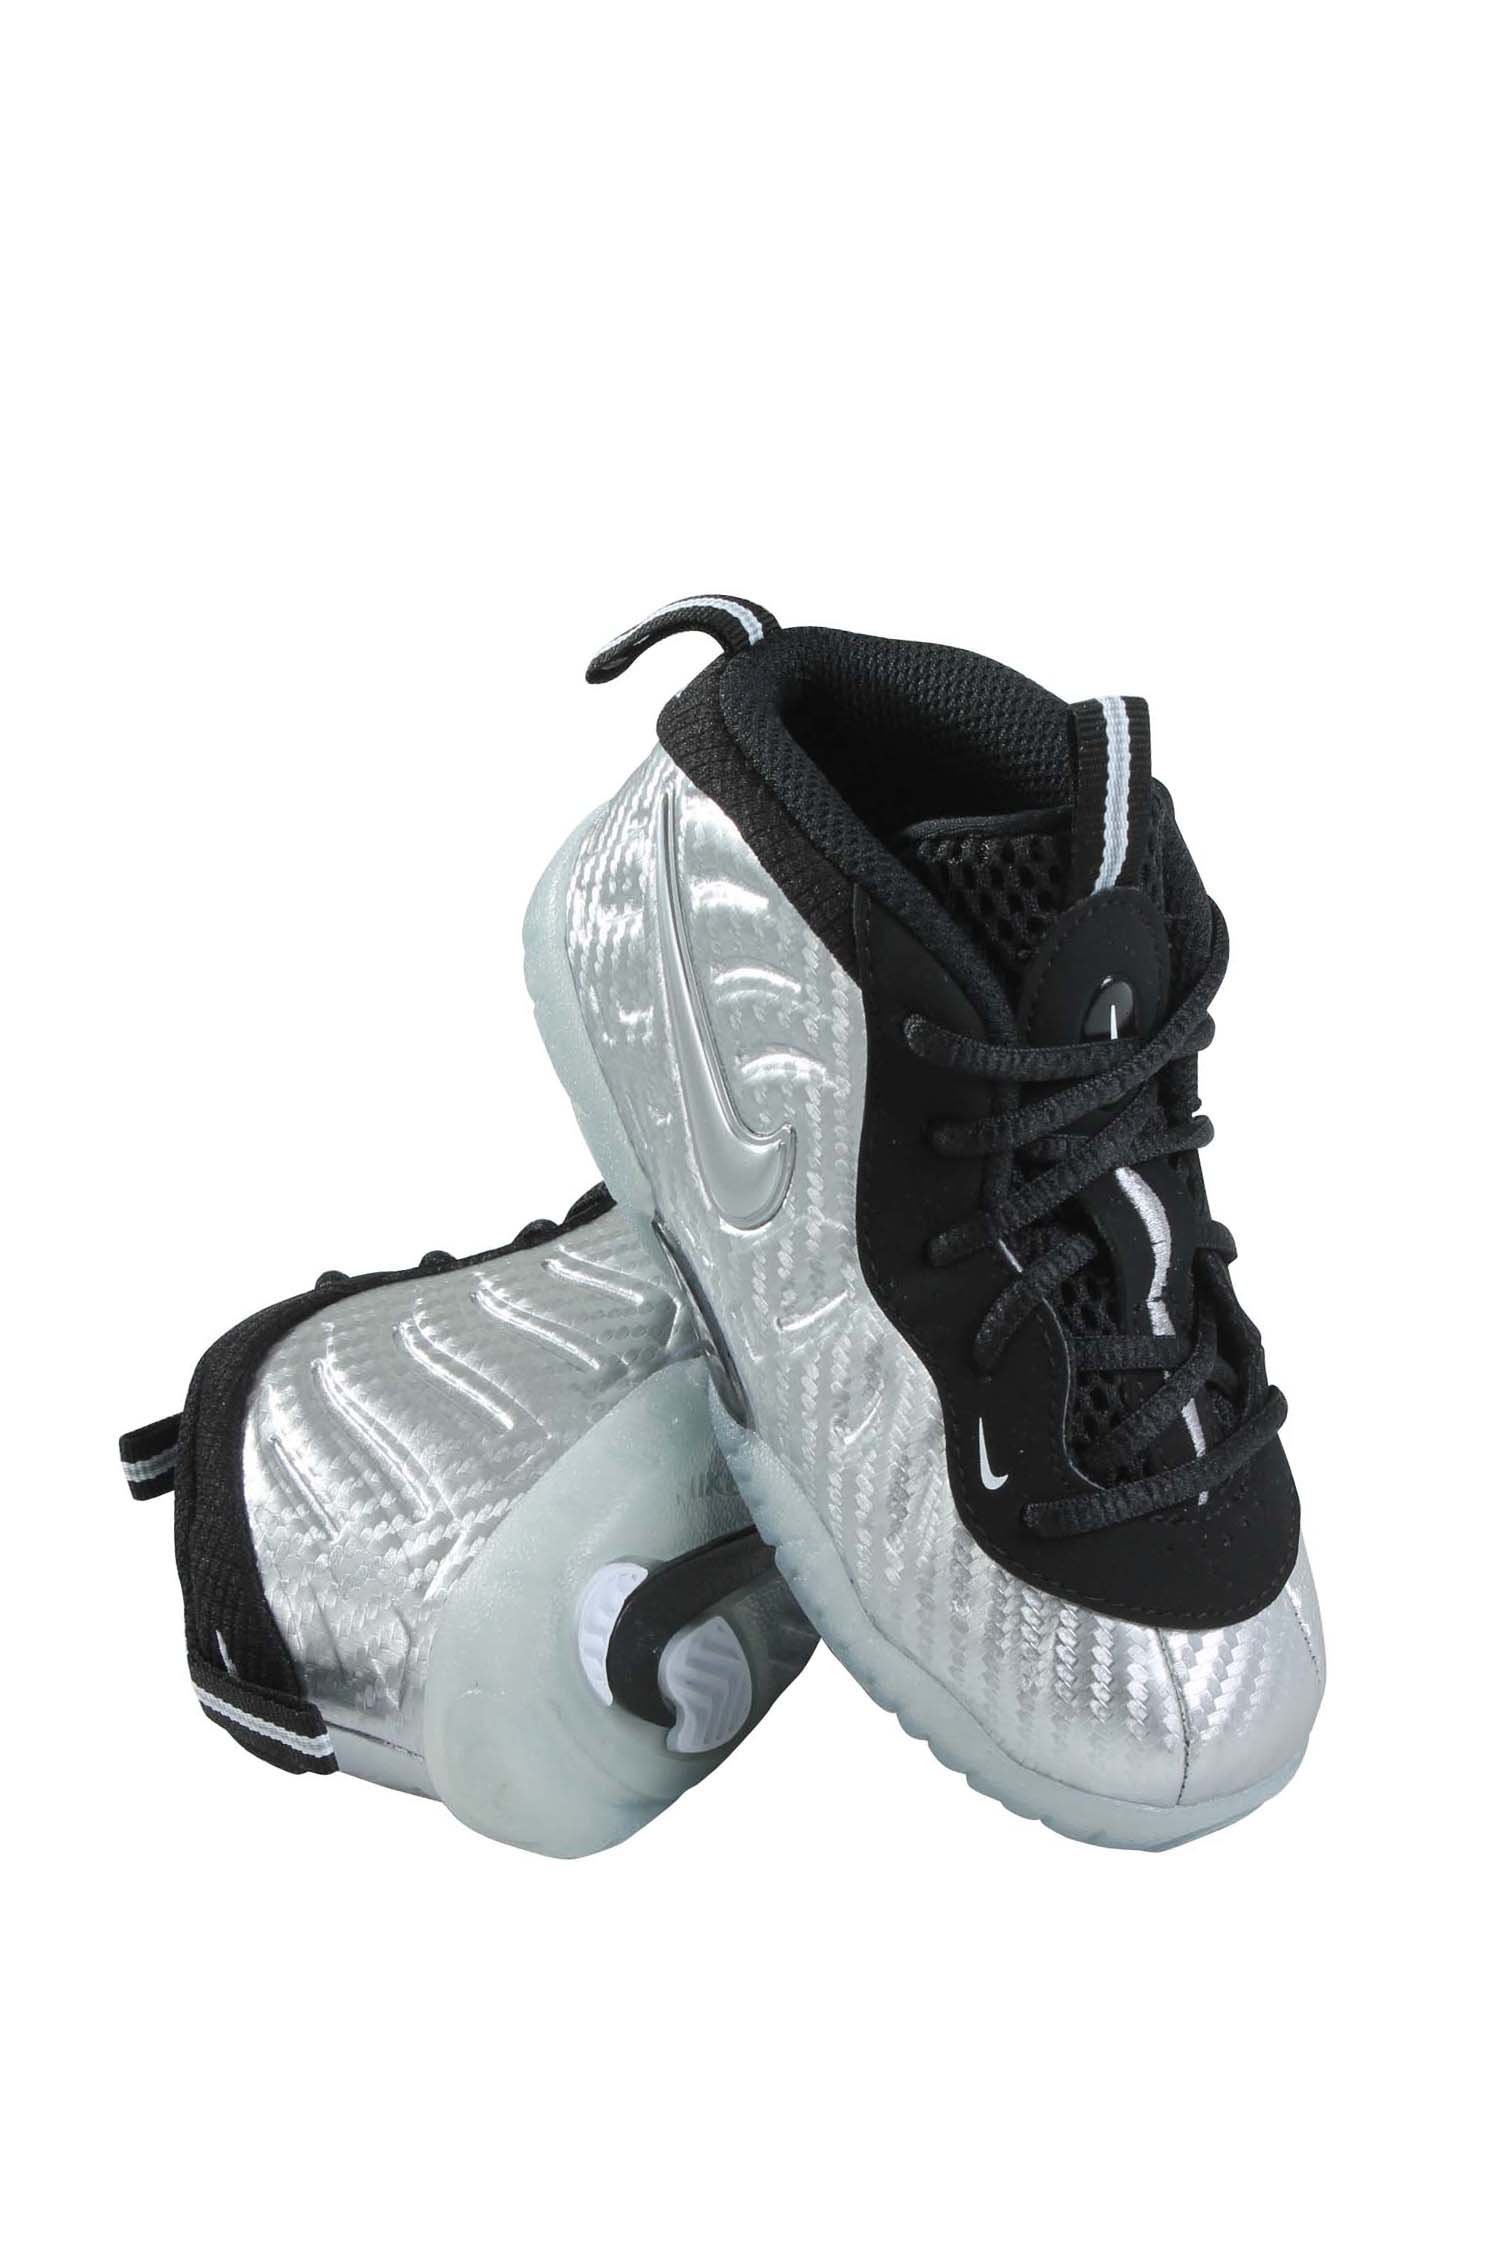 843769-007 INFANTS AND TODDLER LITTLE POSITE PRO (TD) NIKE METALLIC SILVER